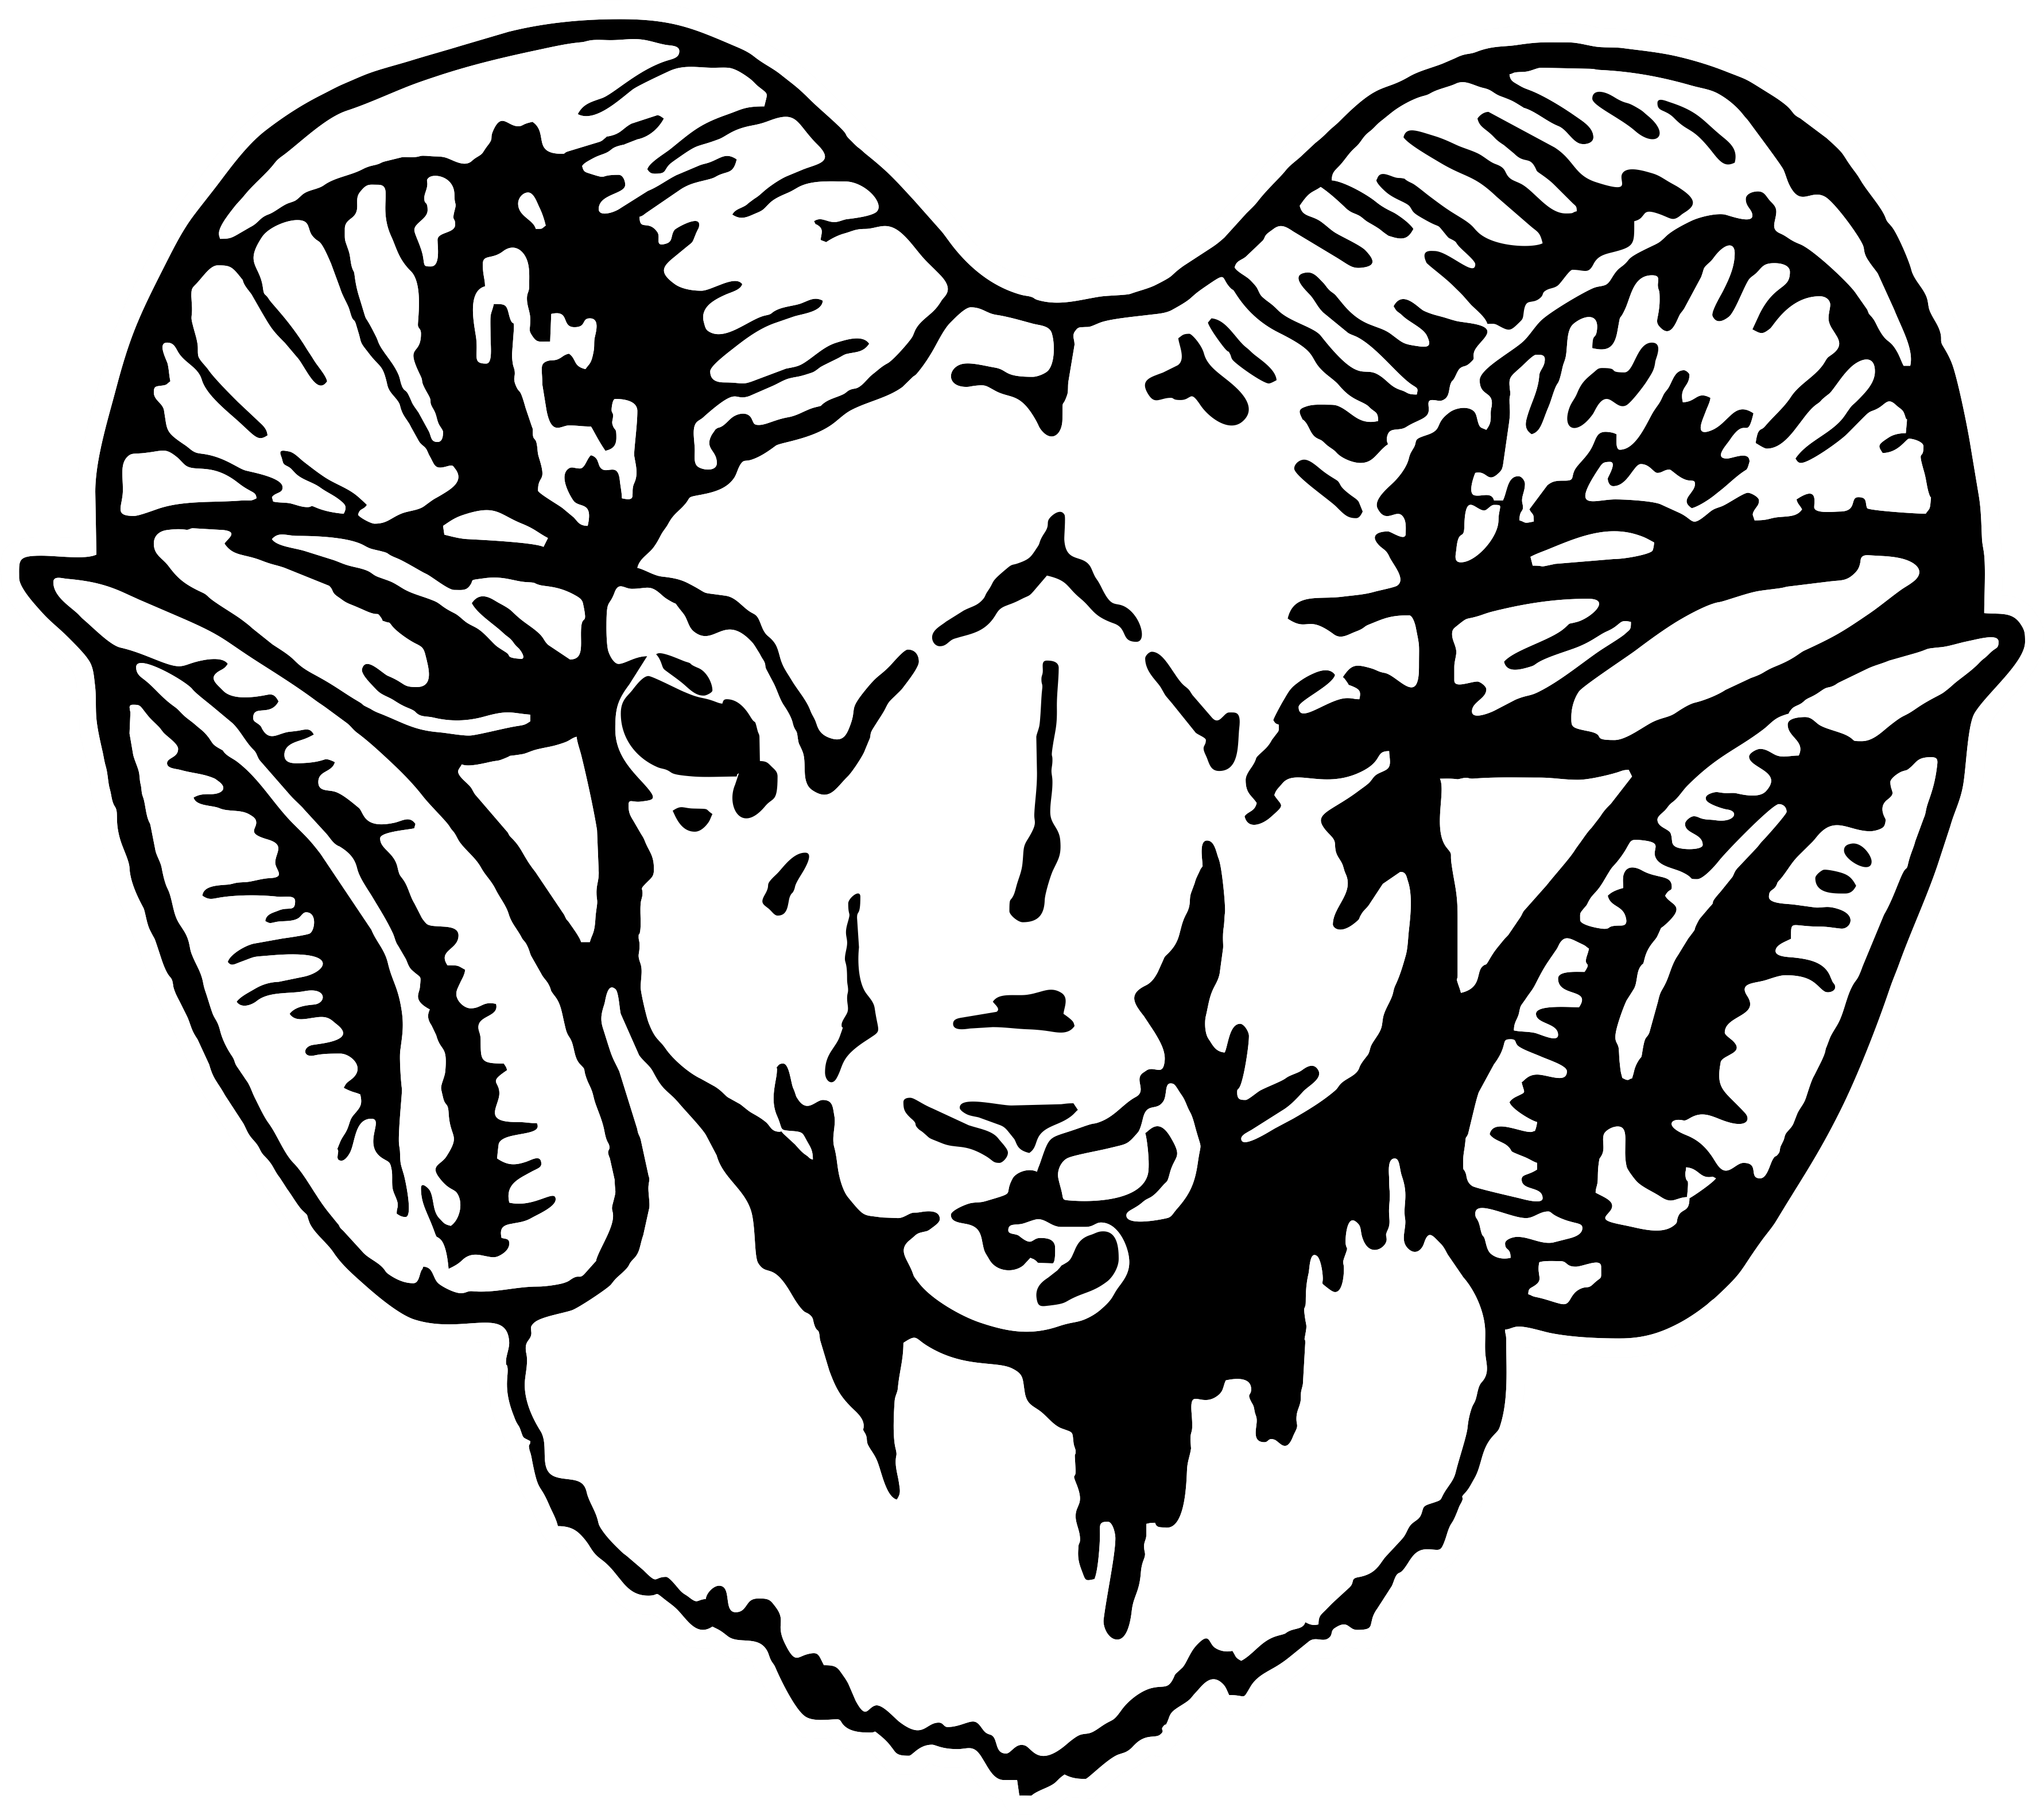 ram head drawing at getdrawings com free for personal use ram head